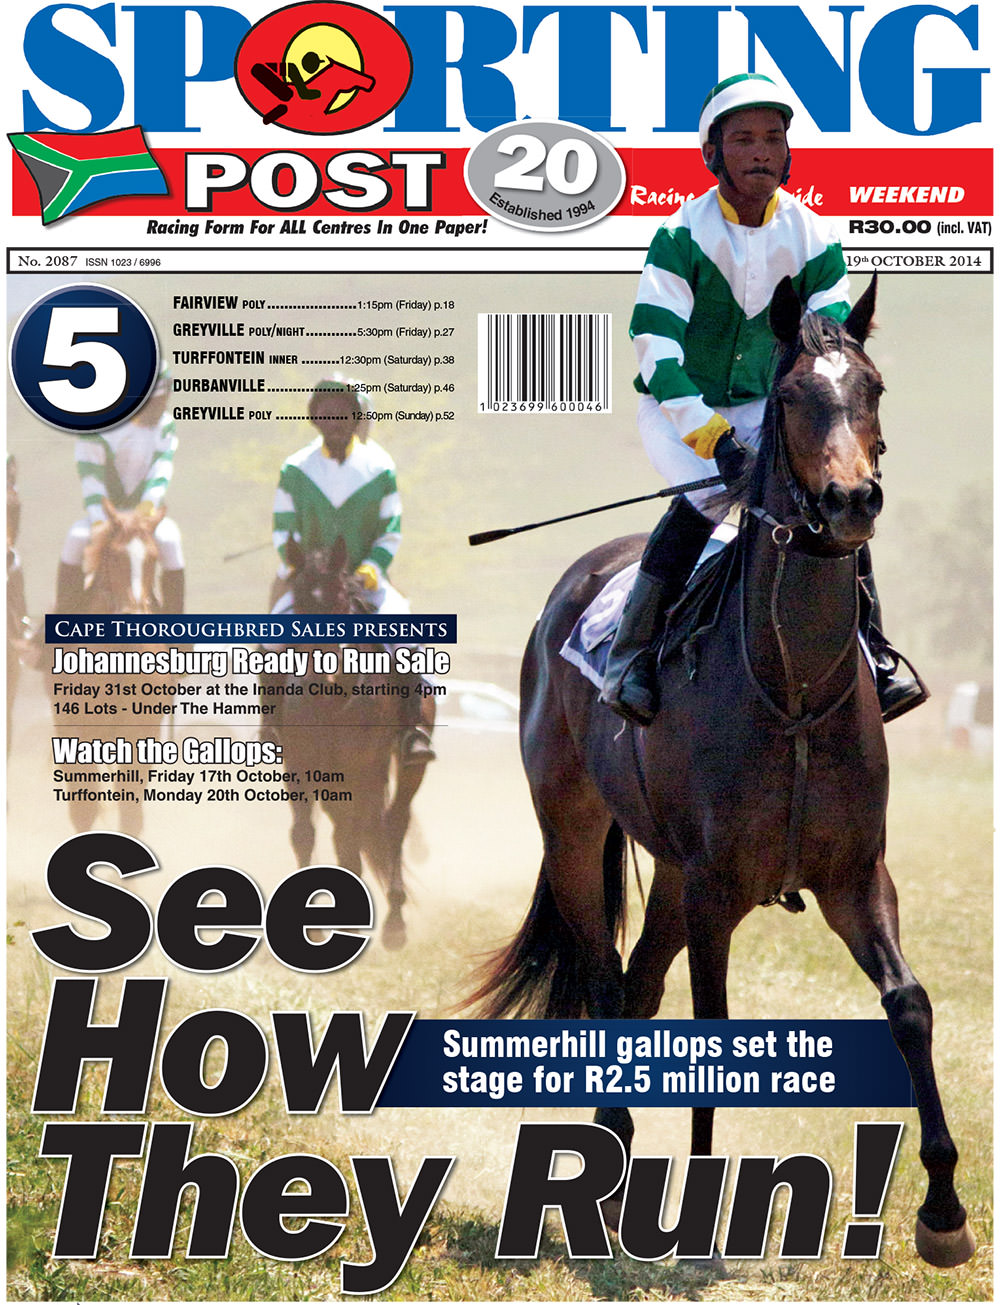 Sporting Post - Johannesburg Ready To Run Sale 2014